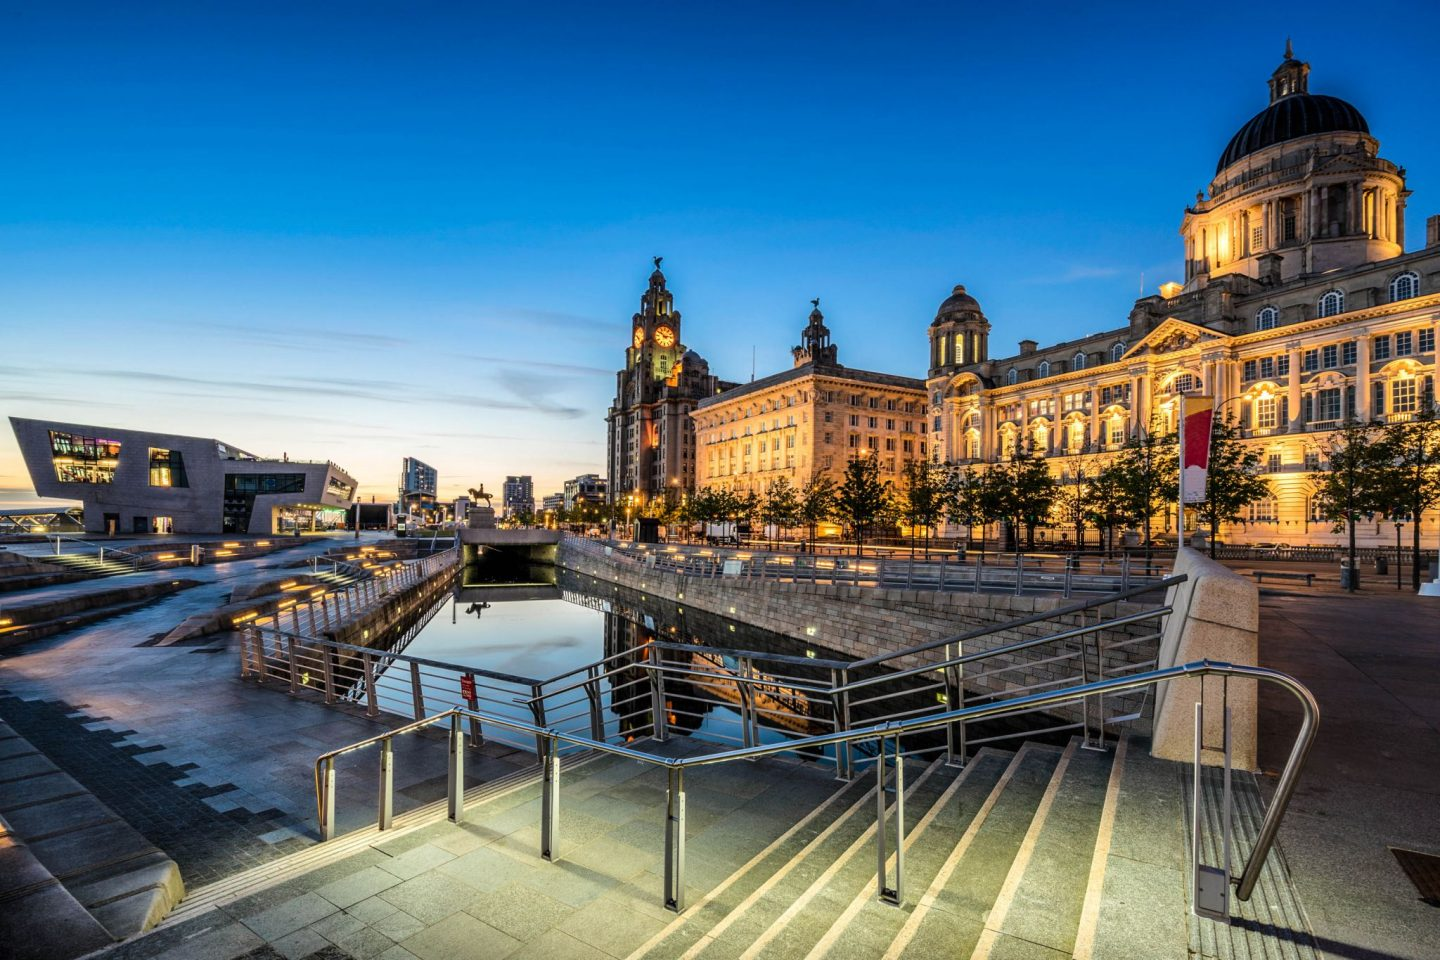 LIVERPOOL'S MOST INSTAGRAMMABLE LOCATIONS